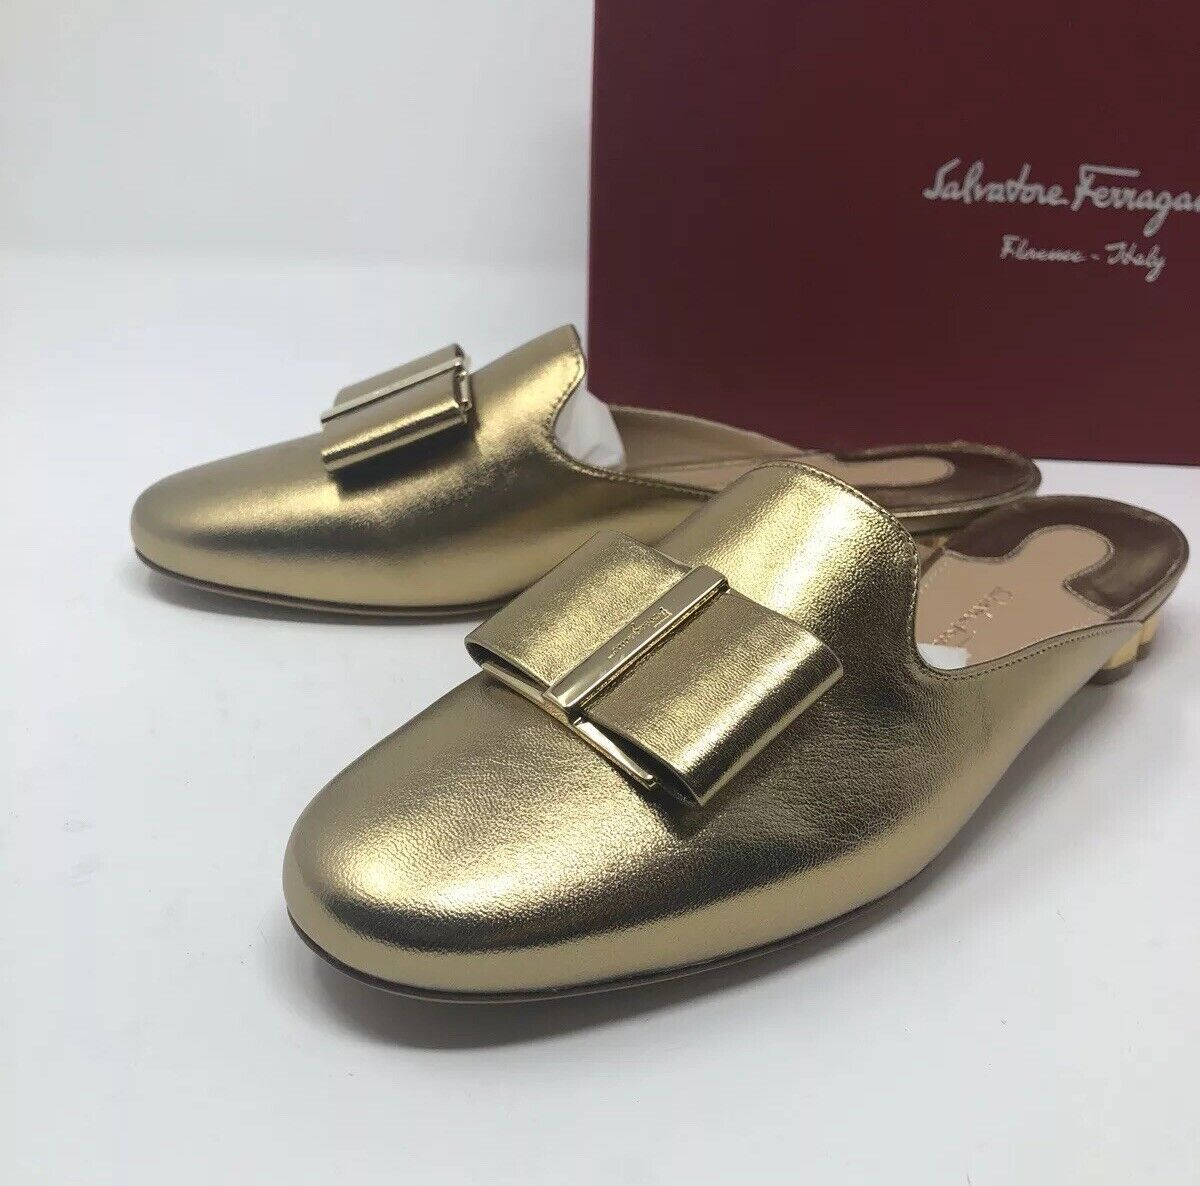 550 New Salvatore Ferragamo Womens Sciacca gold Slippers Ladies shoes Size 6 C